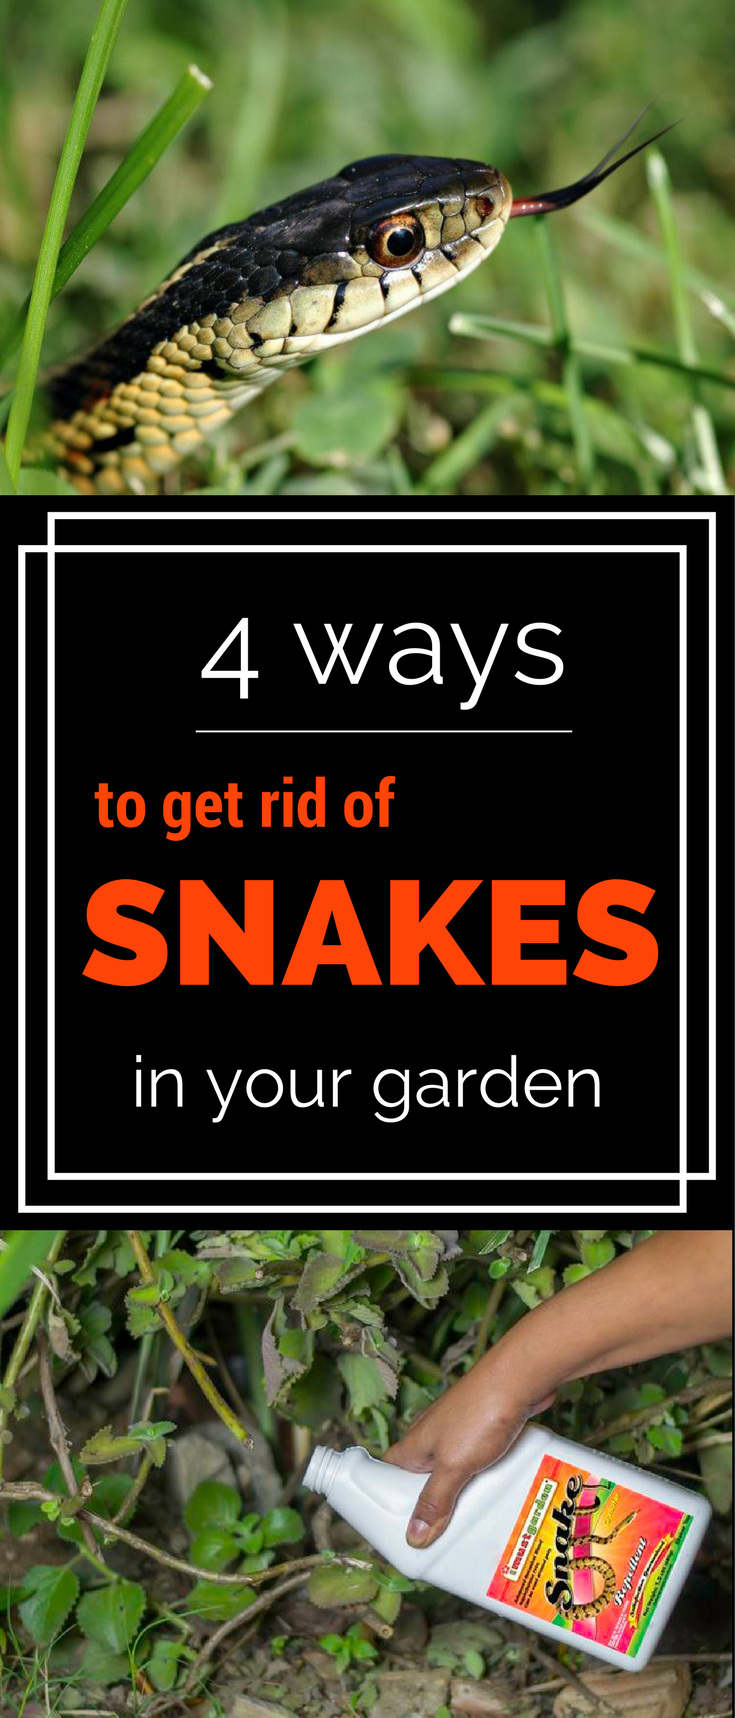 4 Ways To Get Rid Of Snakes In Your Garden